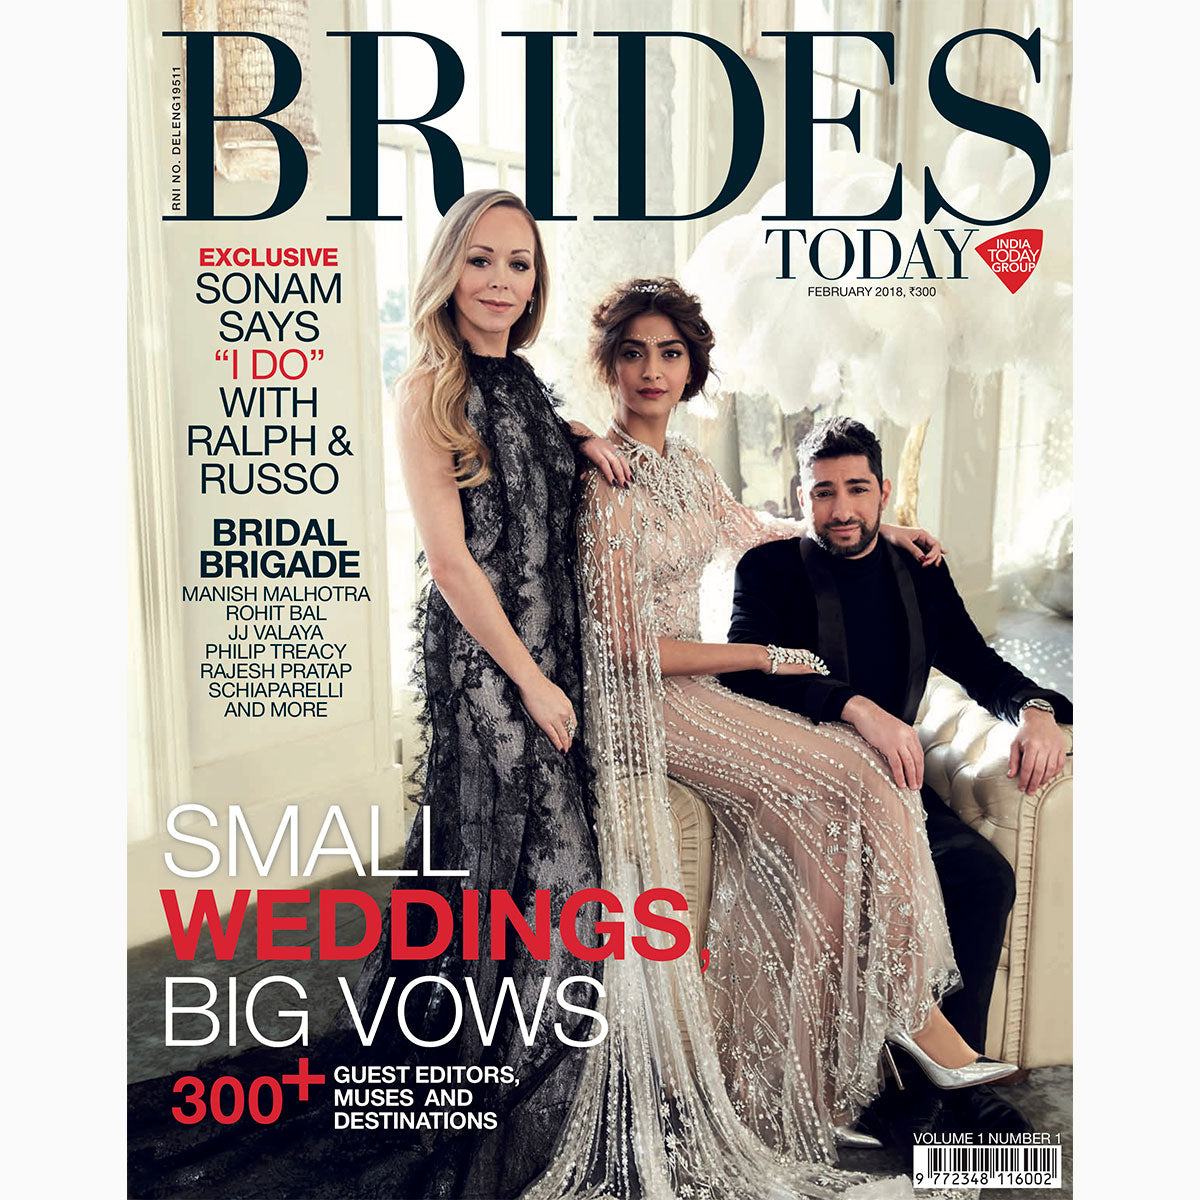 Print Press: Brides Today, 2018 February, Scents & Gender Boundaries